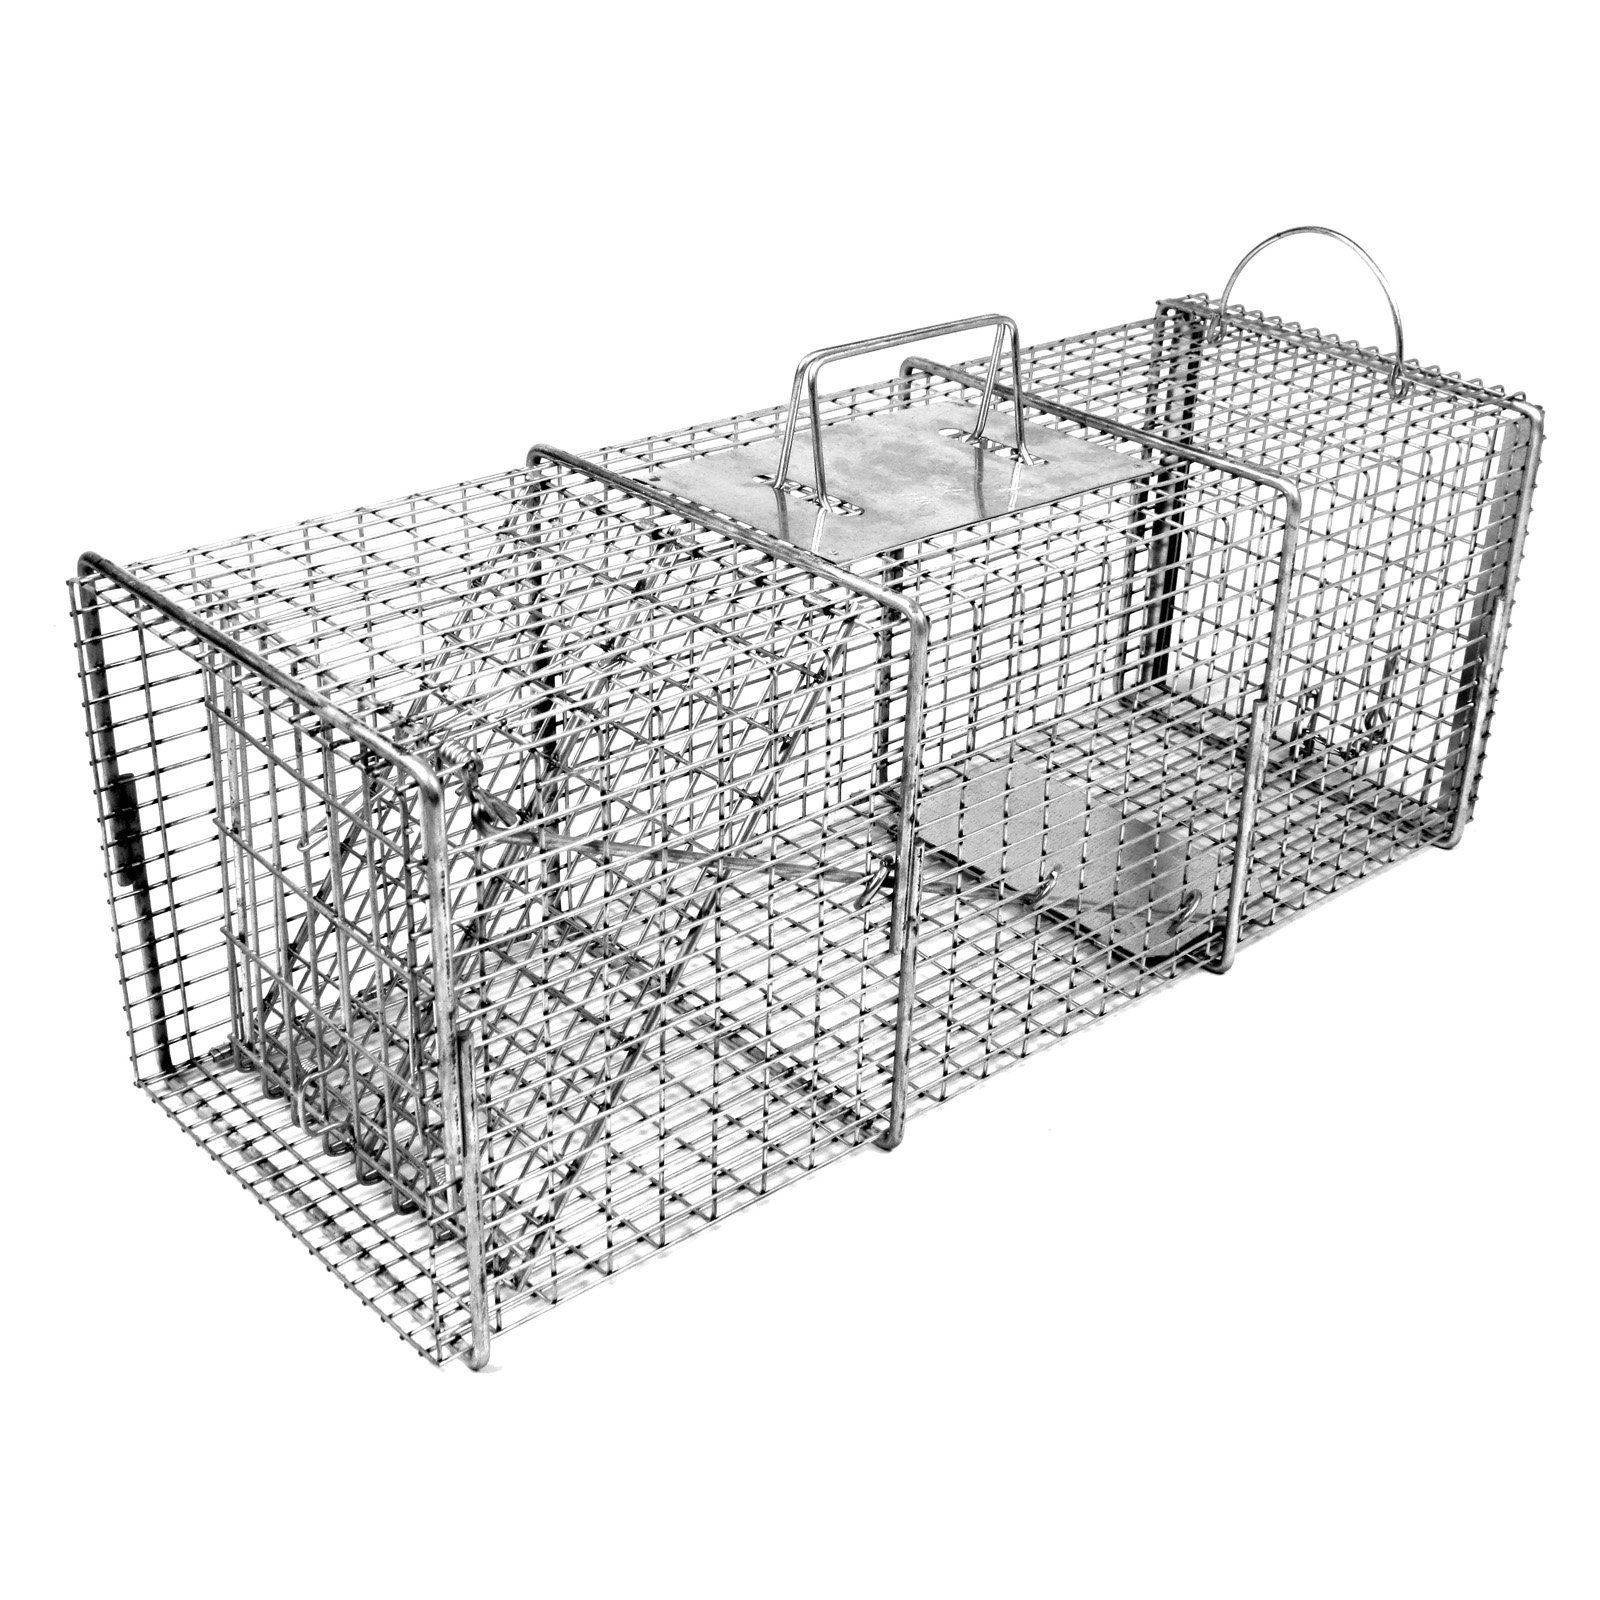 Tomahawk Professional Series Rigid Trap with Easy Release Door for Cats and Rabbits